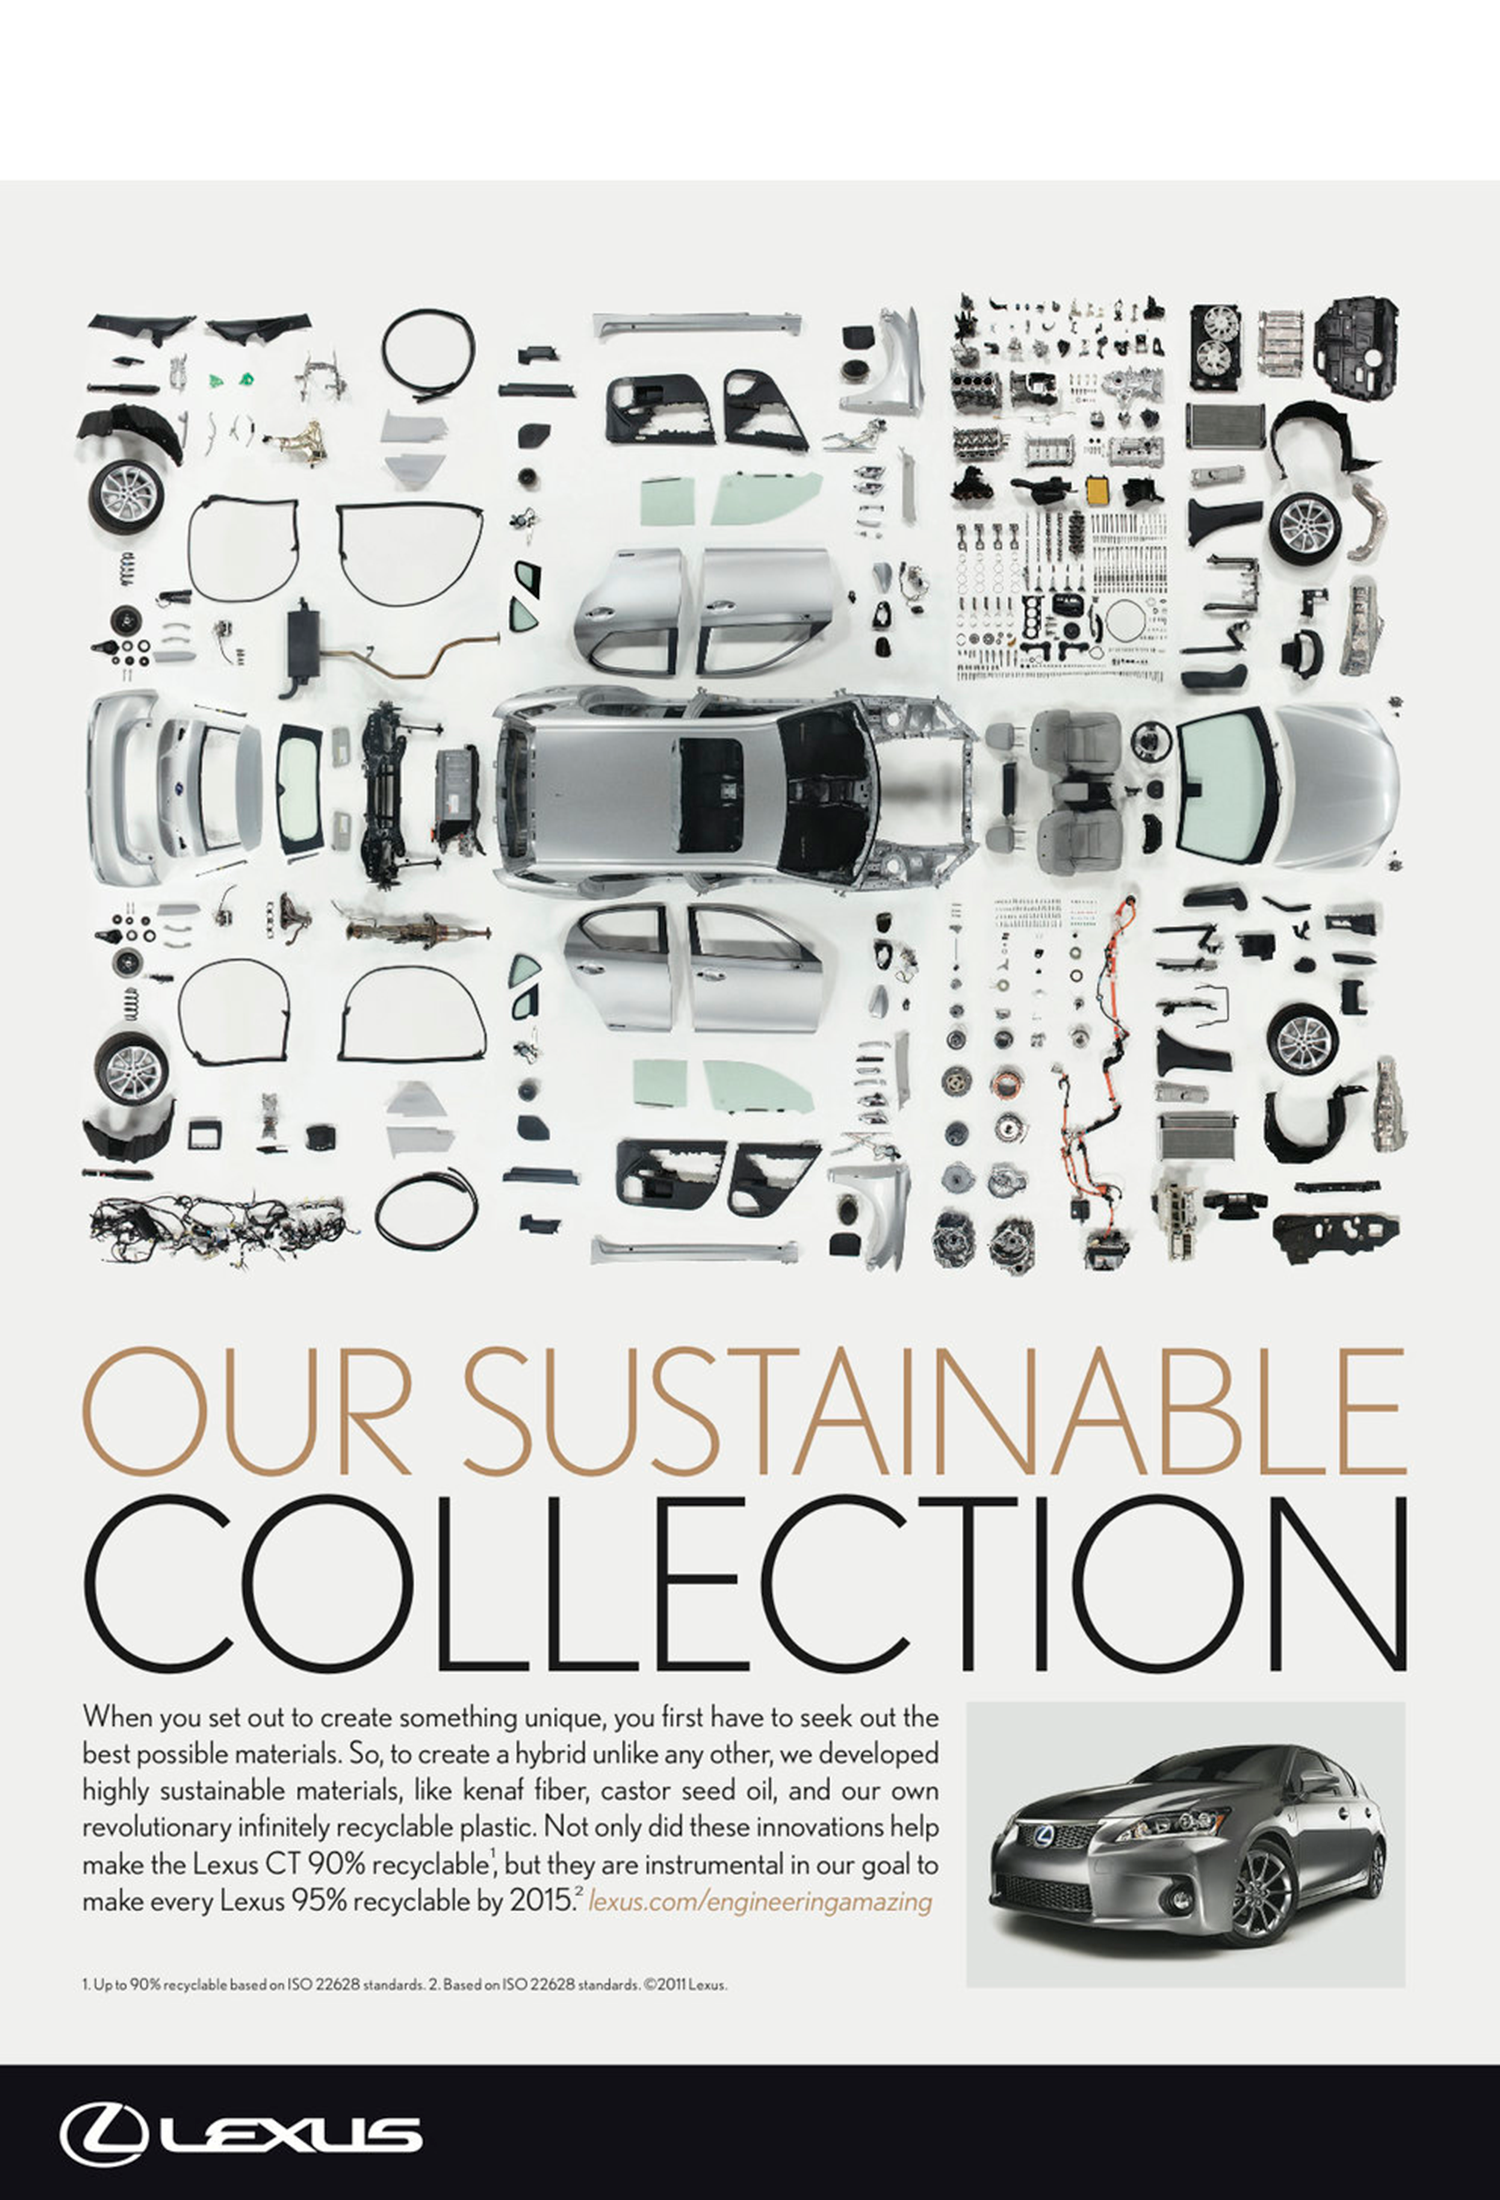 Lexus' first sustainable collection.